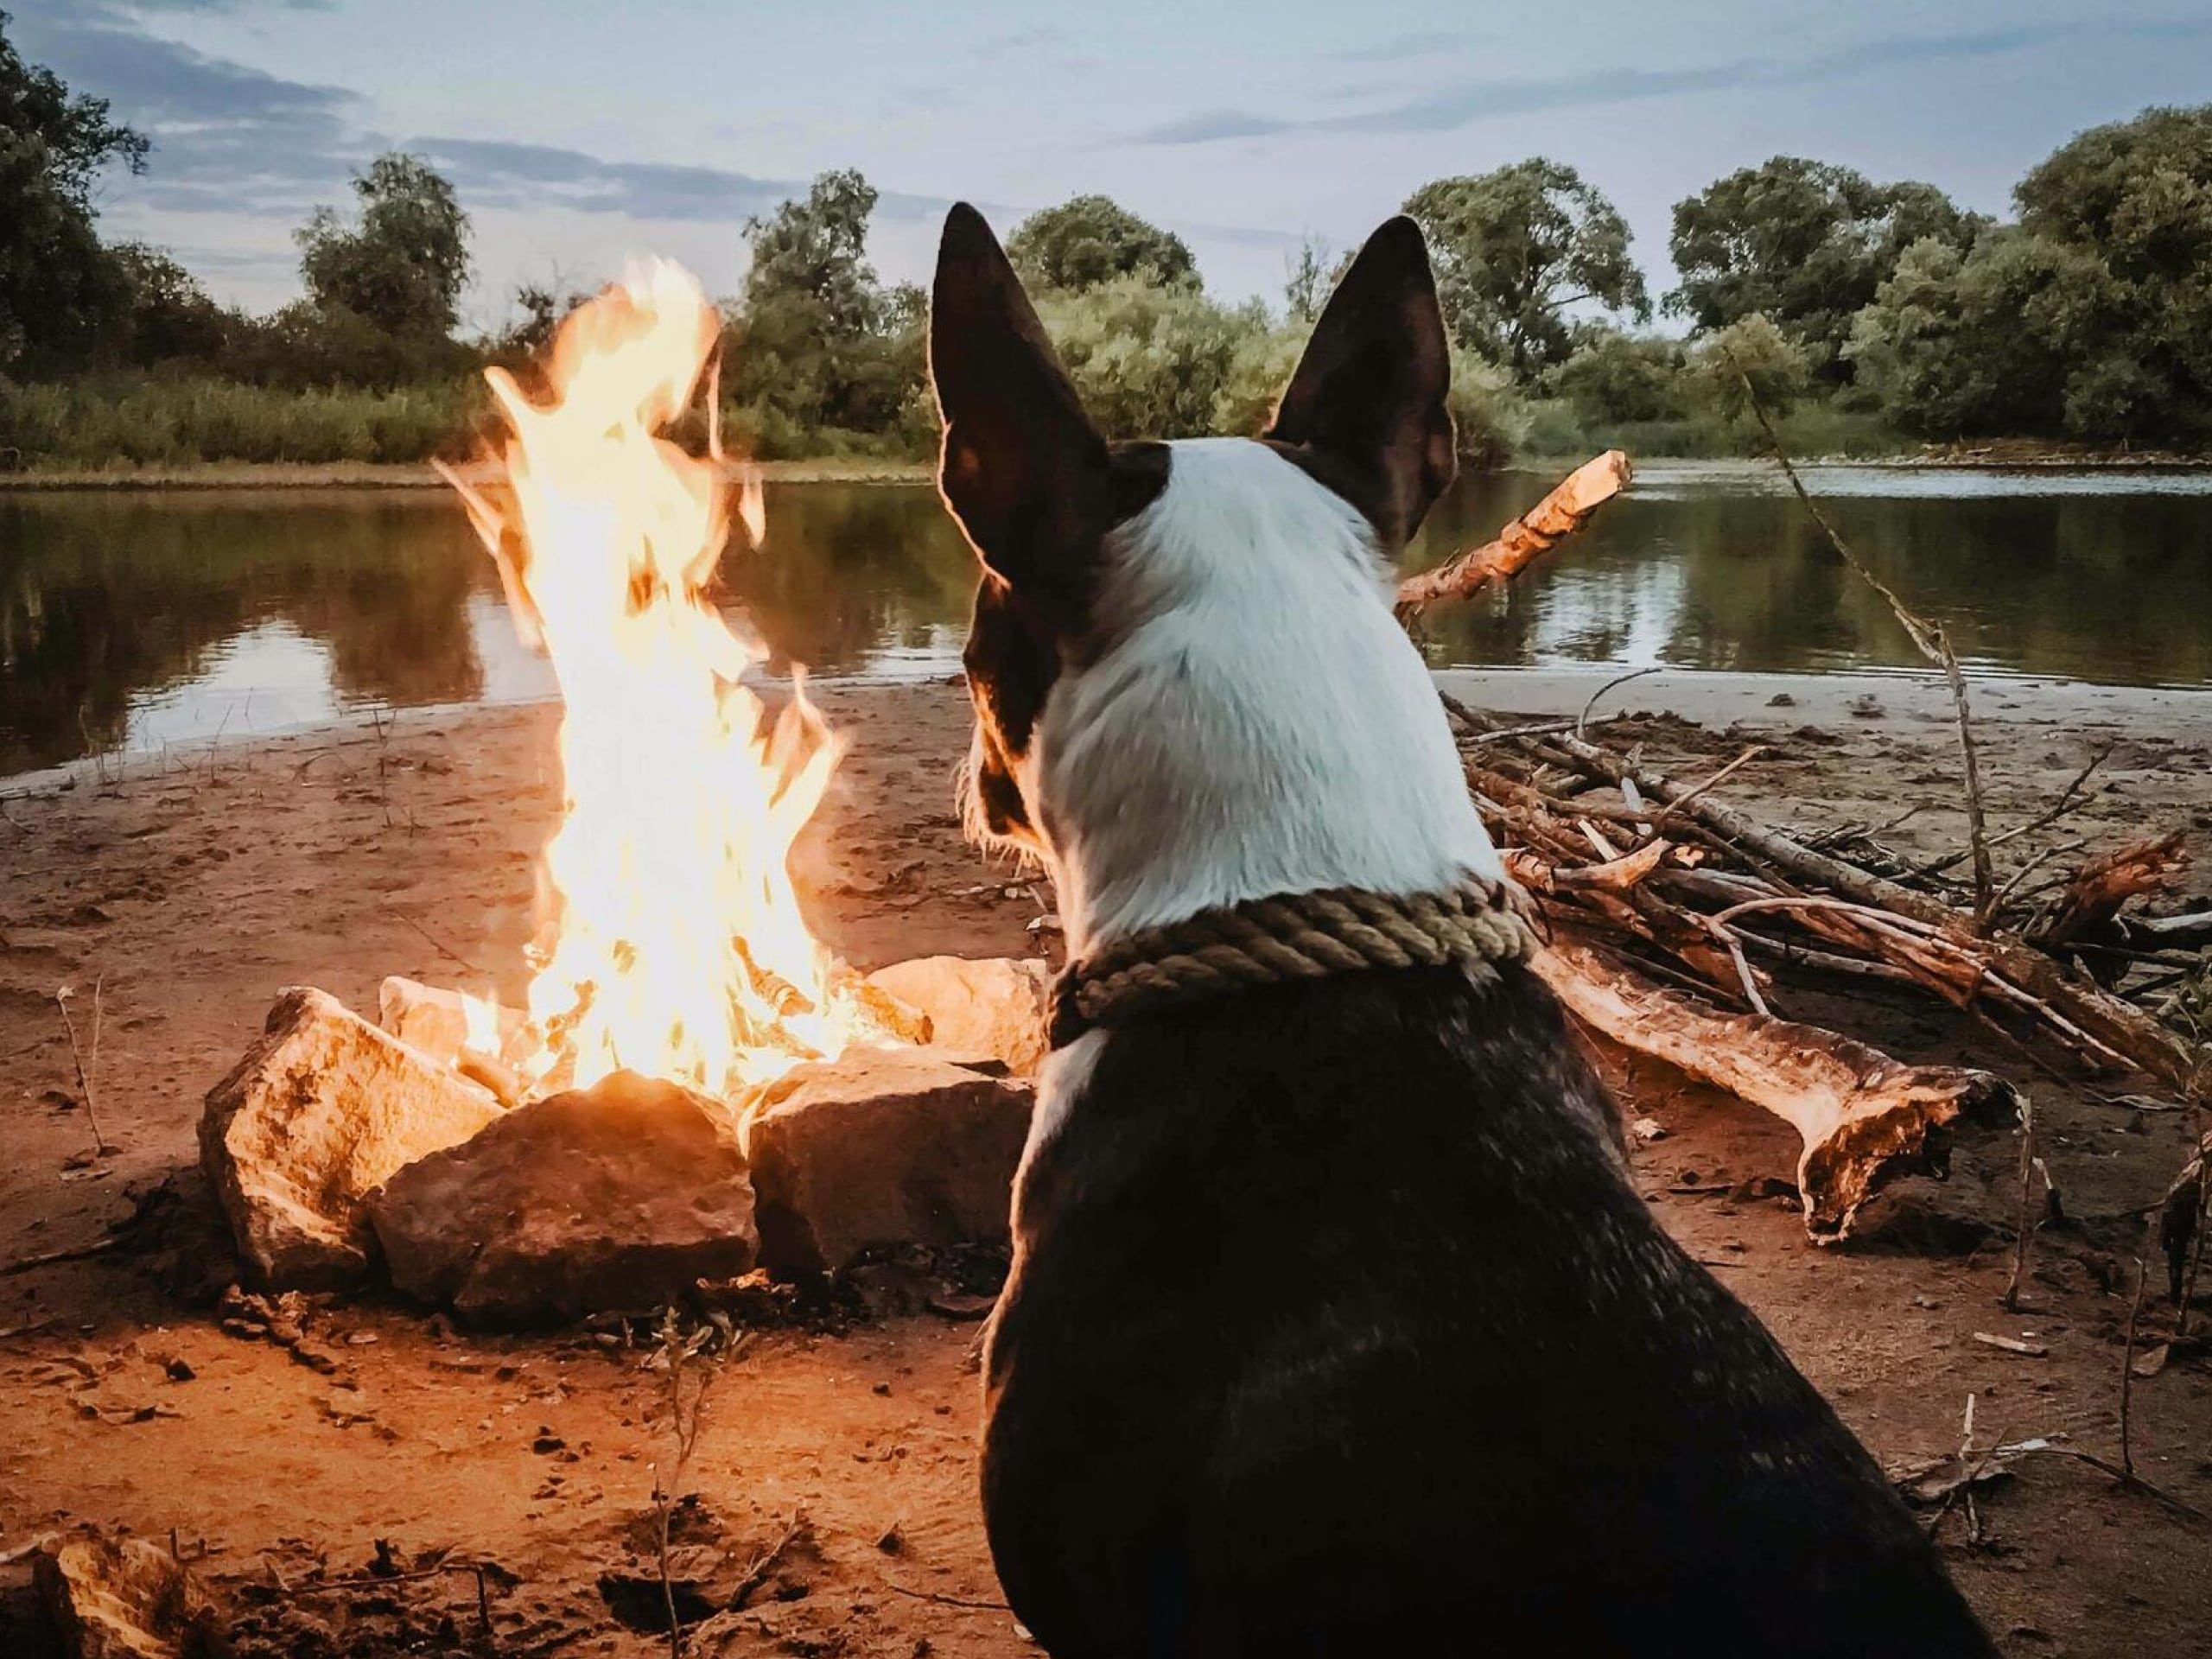 The back of a dog's head as they sit in front of a fire.